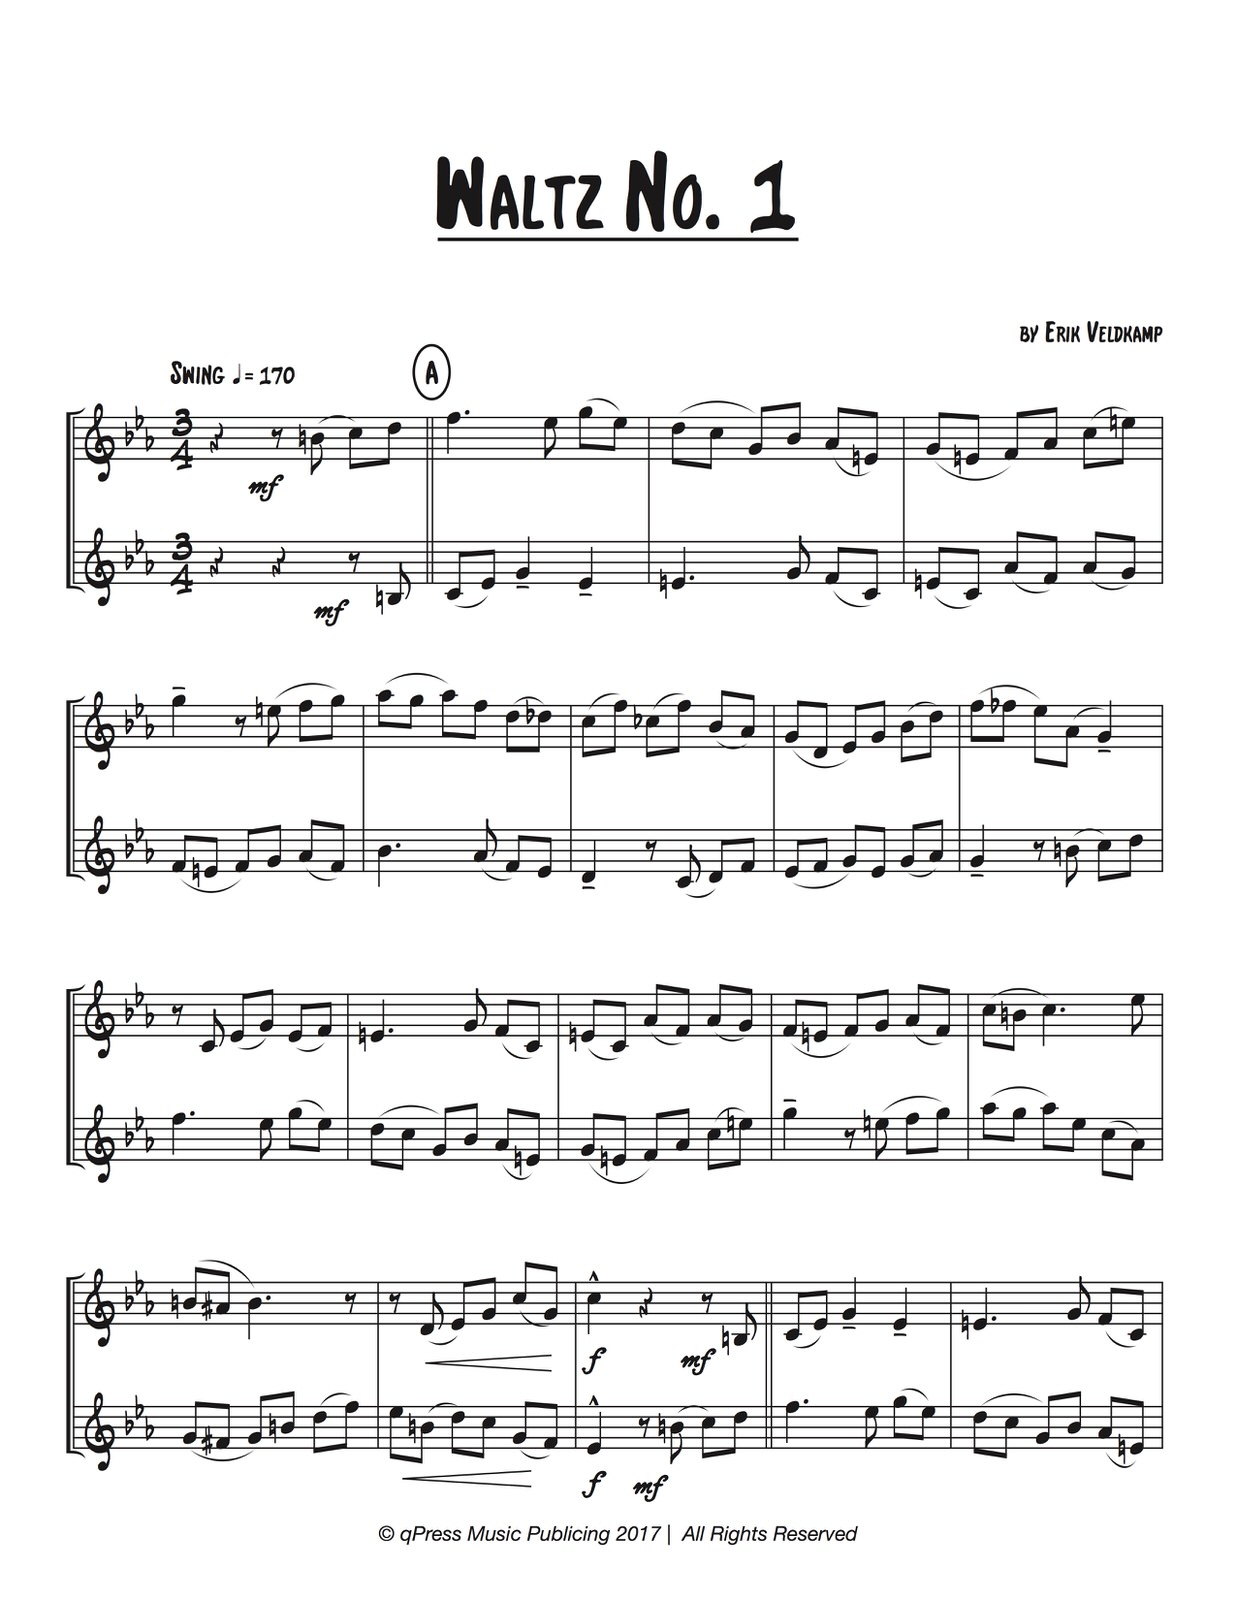 Veldkamp, Six Waltzing Duets for Two Trumpet-p03